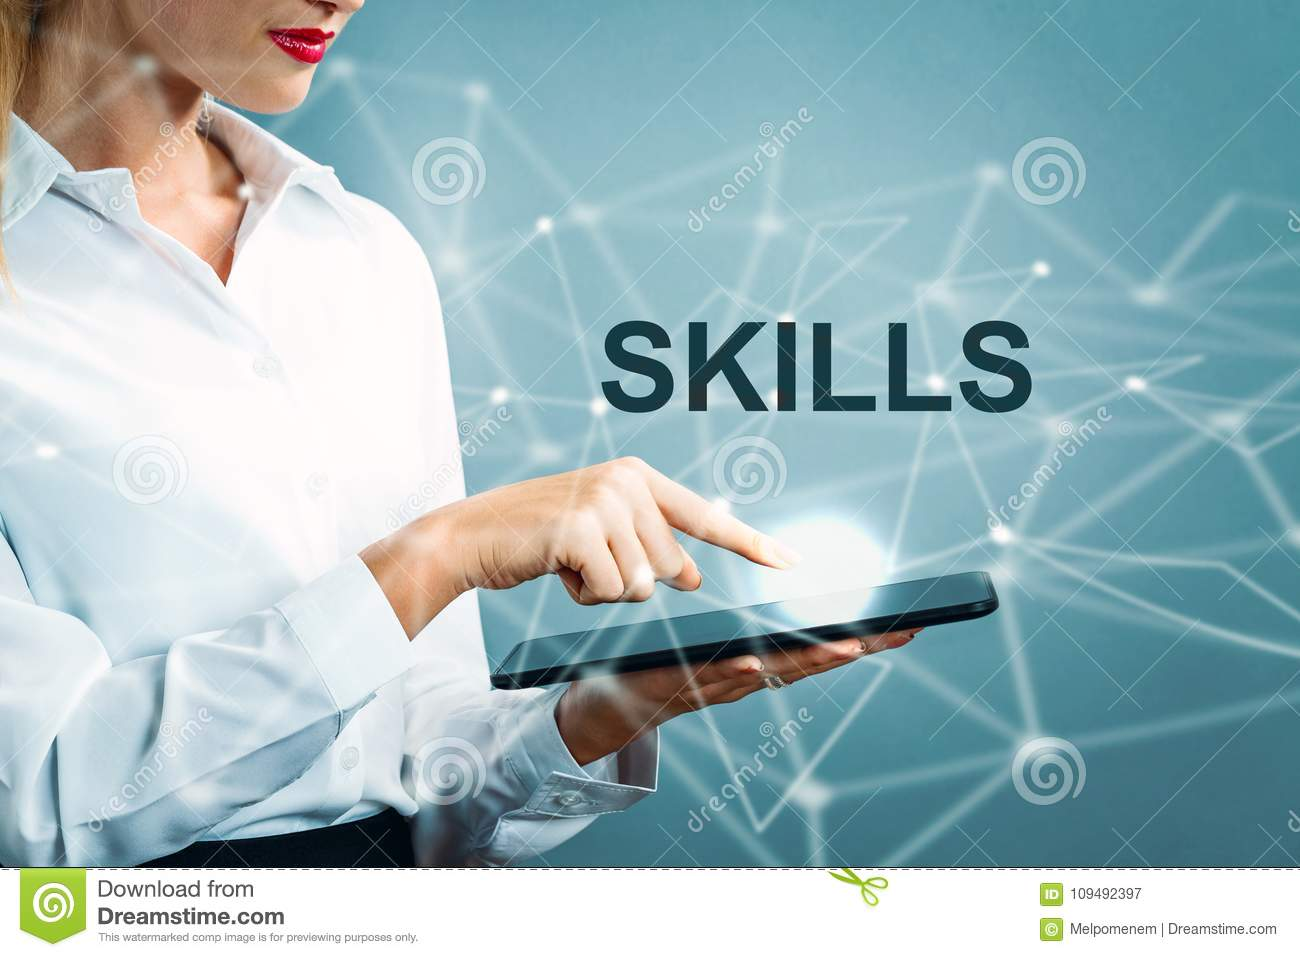 Skills text with business woman